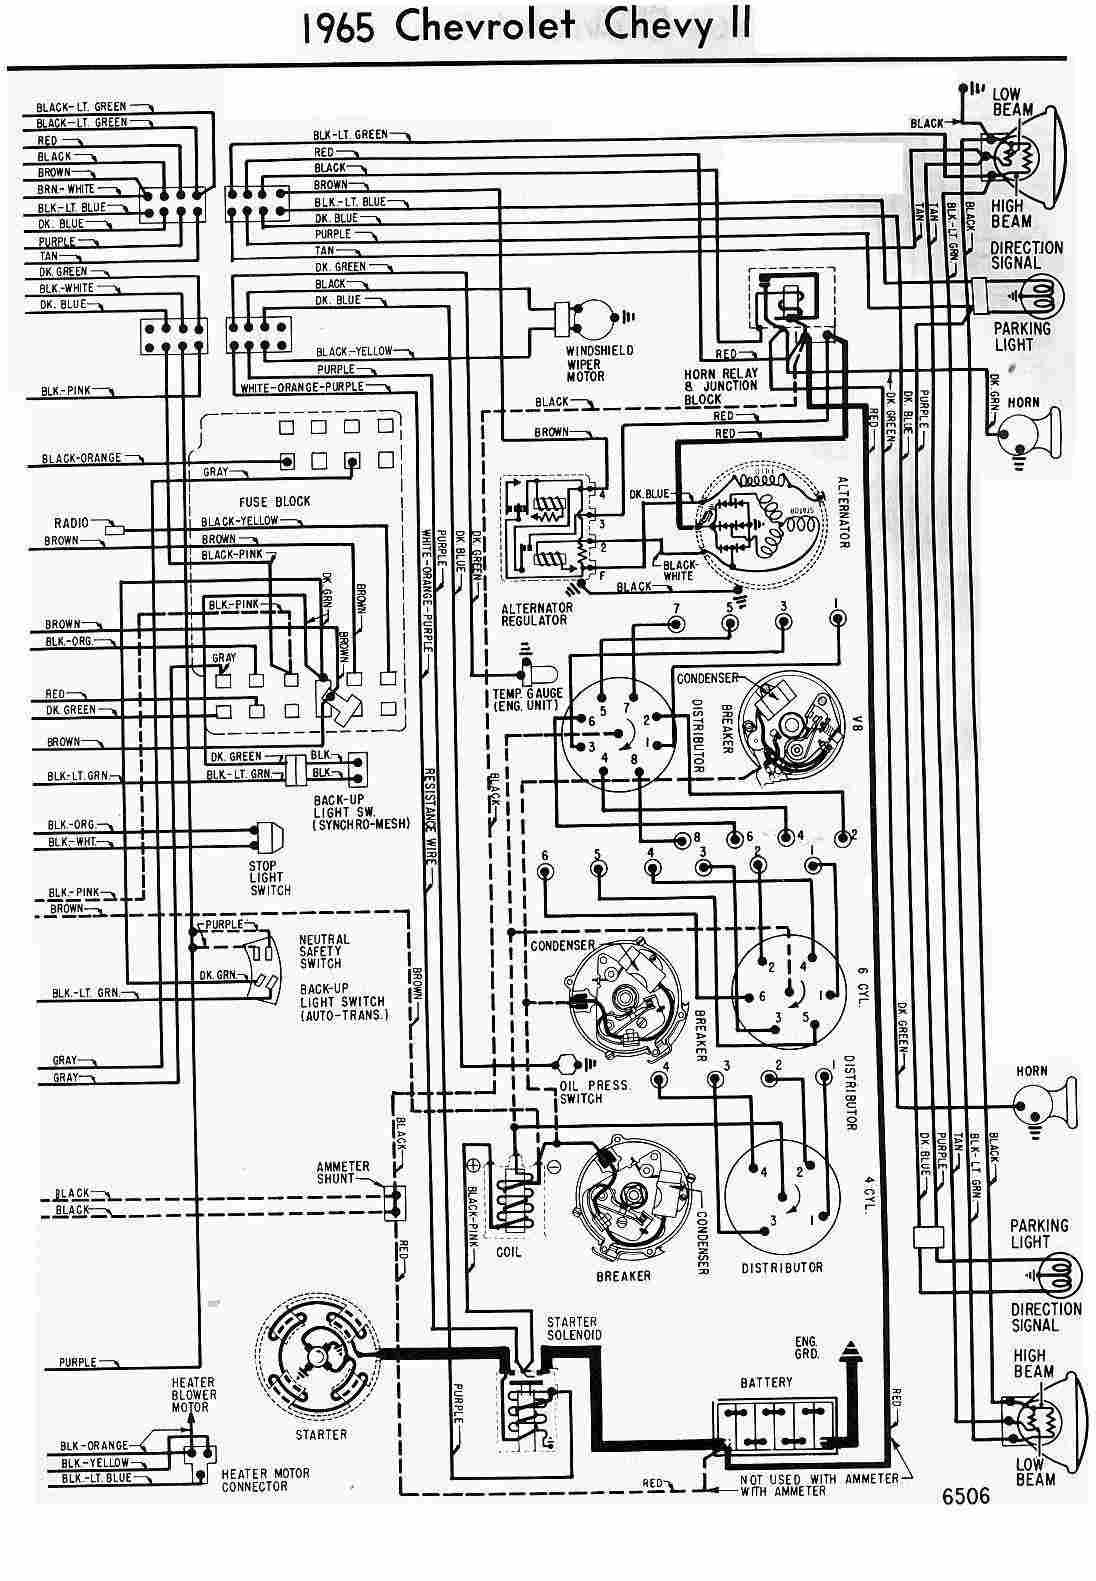 chevrolet car manuals wiring diagrams pdf fault codes rh automotive manuals net Automotive Wiring Diagrams Lights 1991 Corvette Wiring Diagrams Automotive